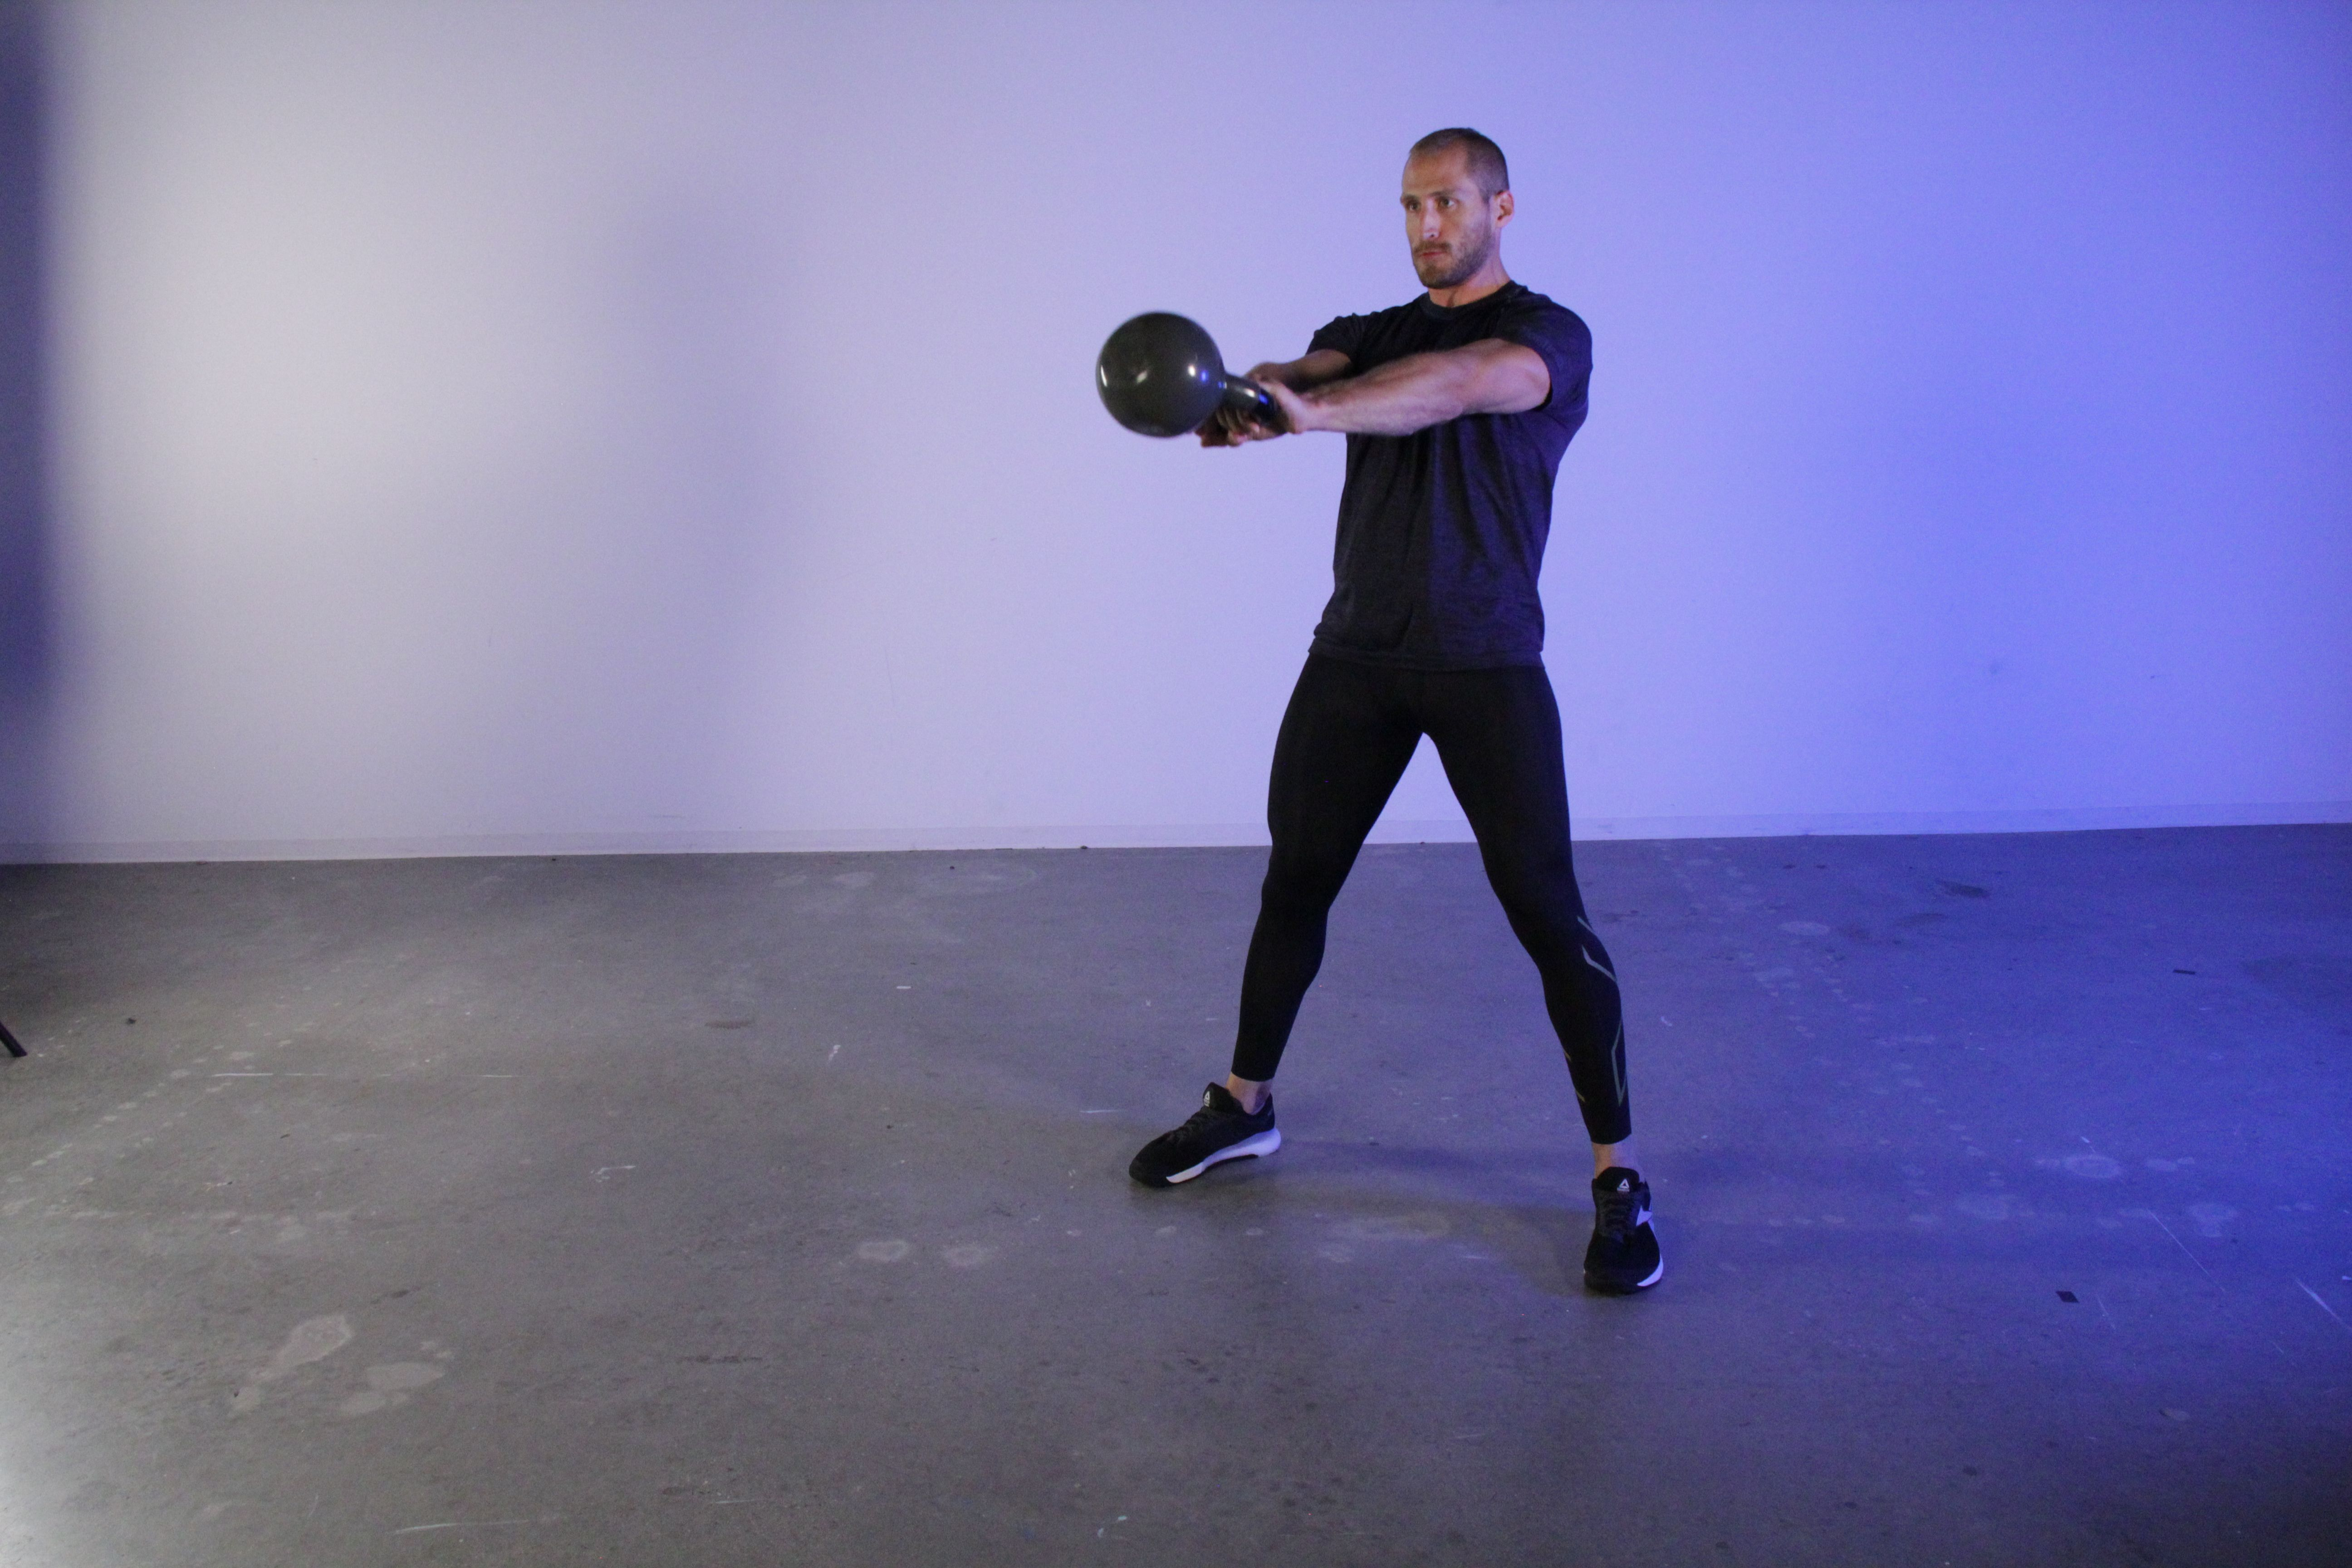 If You're Squatting in Your Kettlebell Swing, You're Doing It Wrong